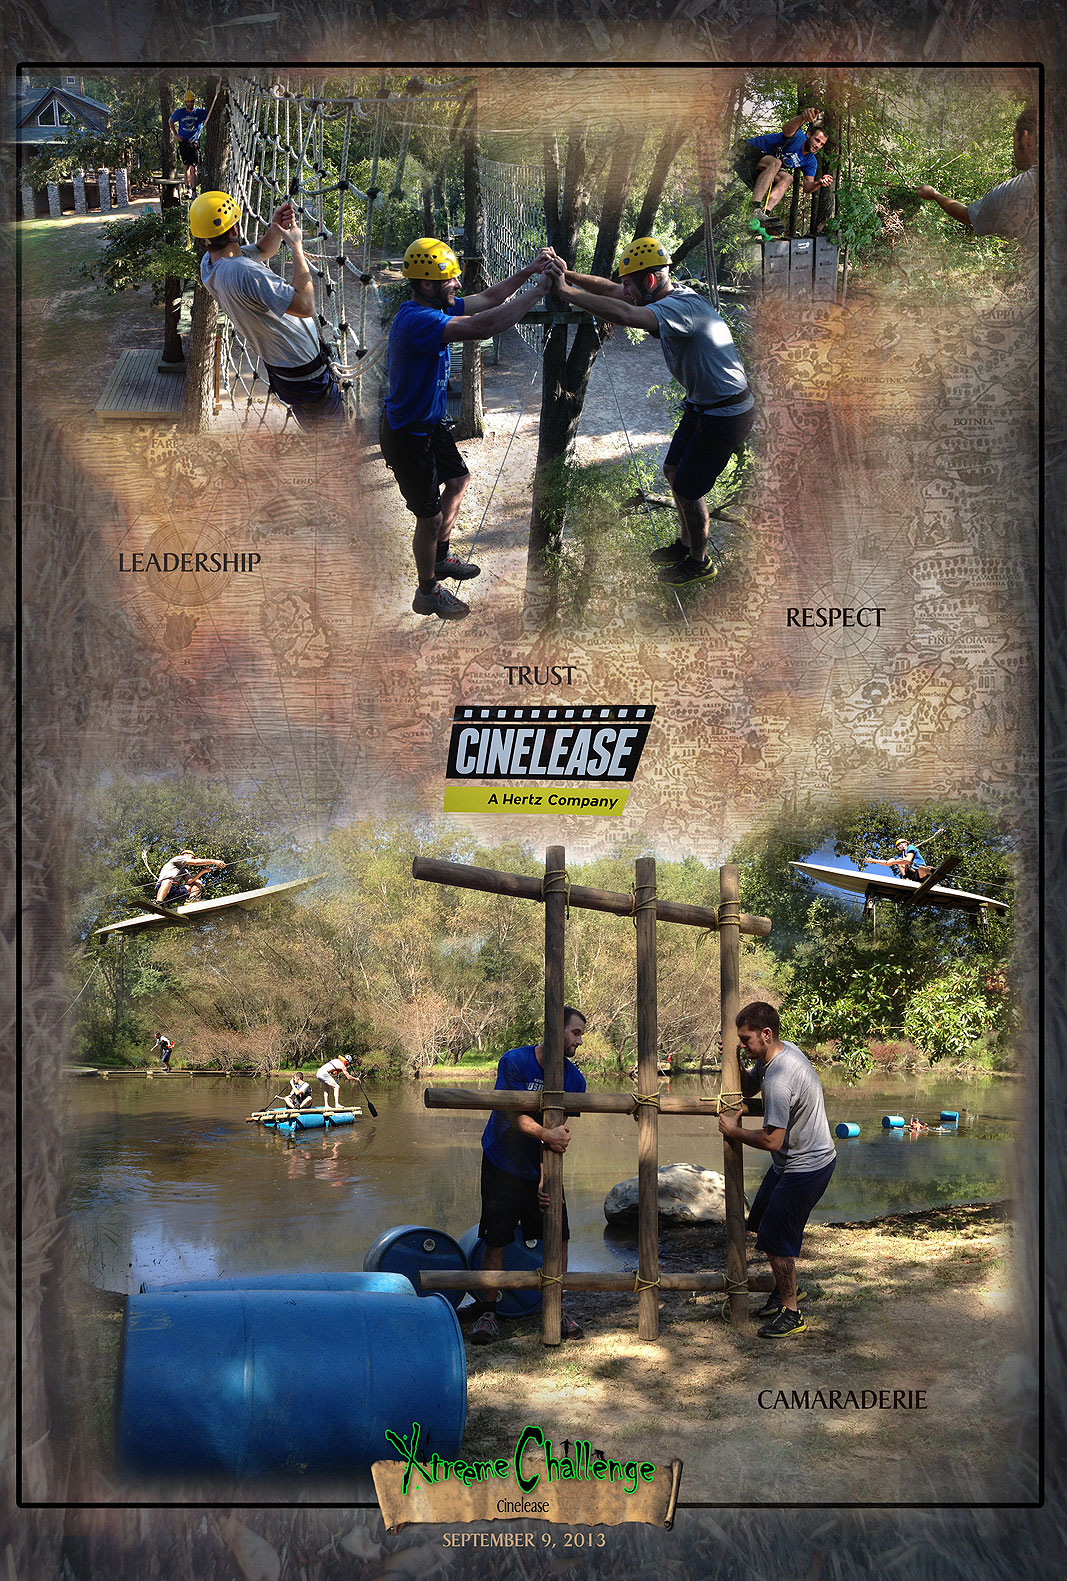 Cinelease two man team building program at Xtreeme Chasllenge in Monroe North Carolina